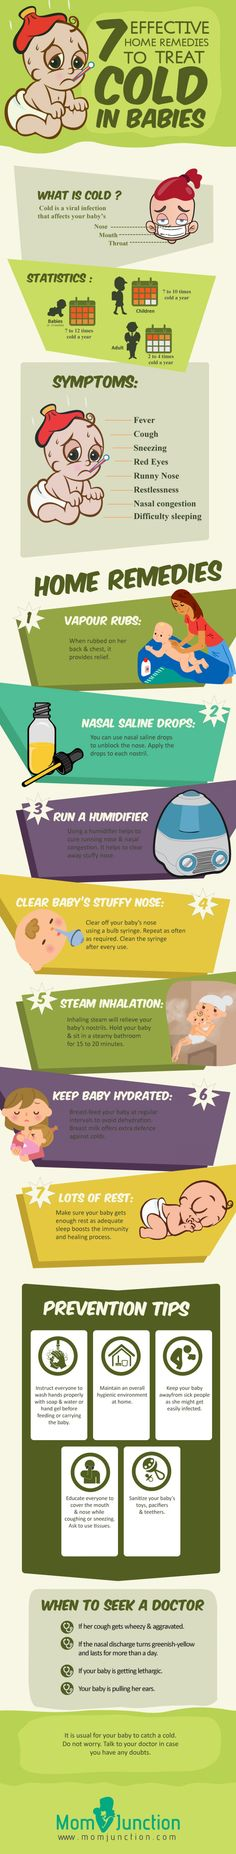 Home remedies for cold in babies #infographic